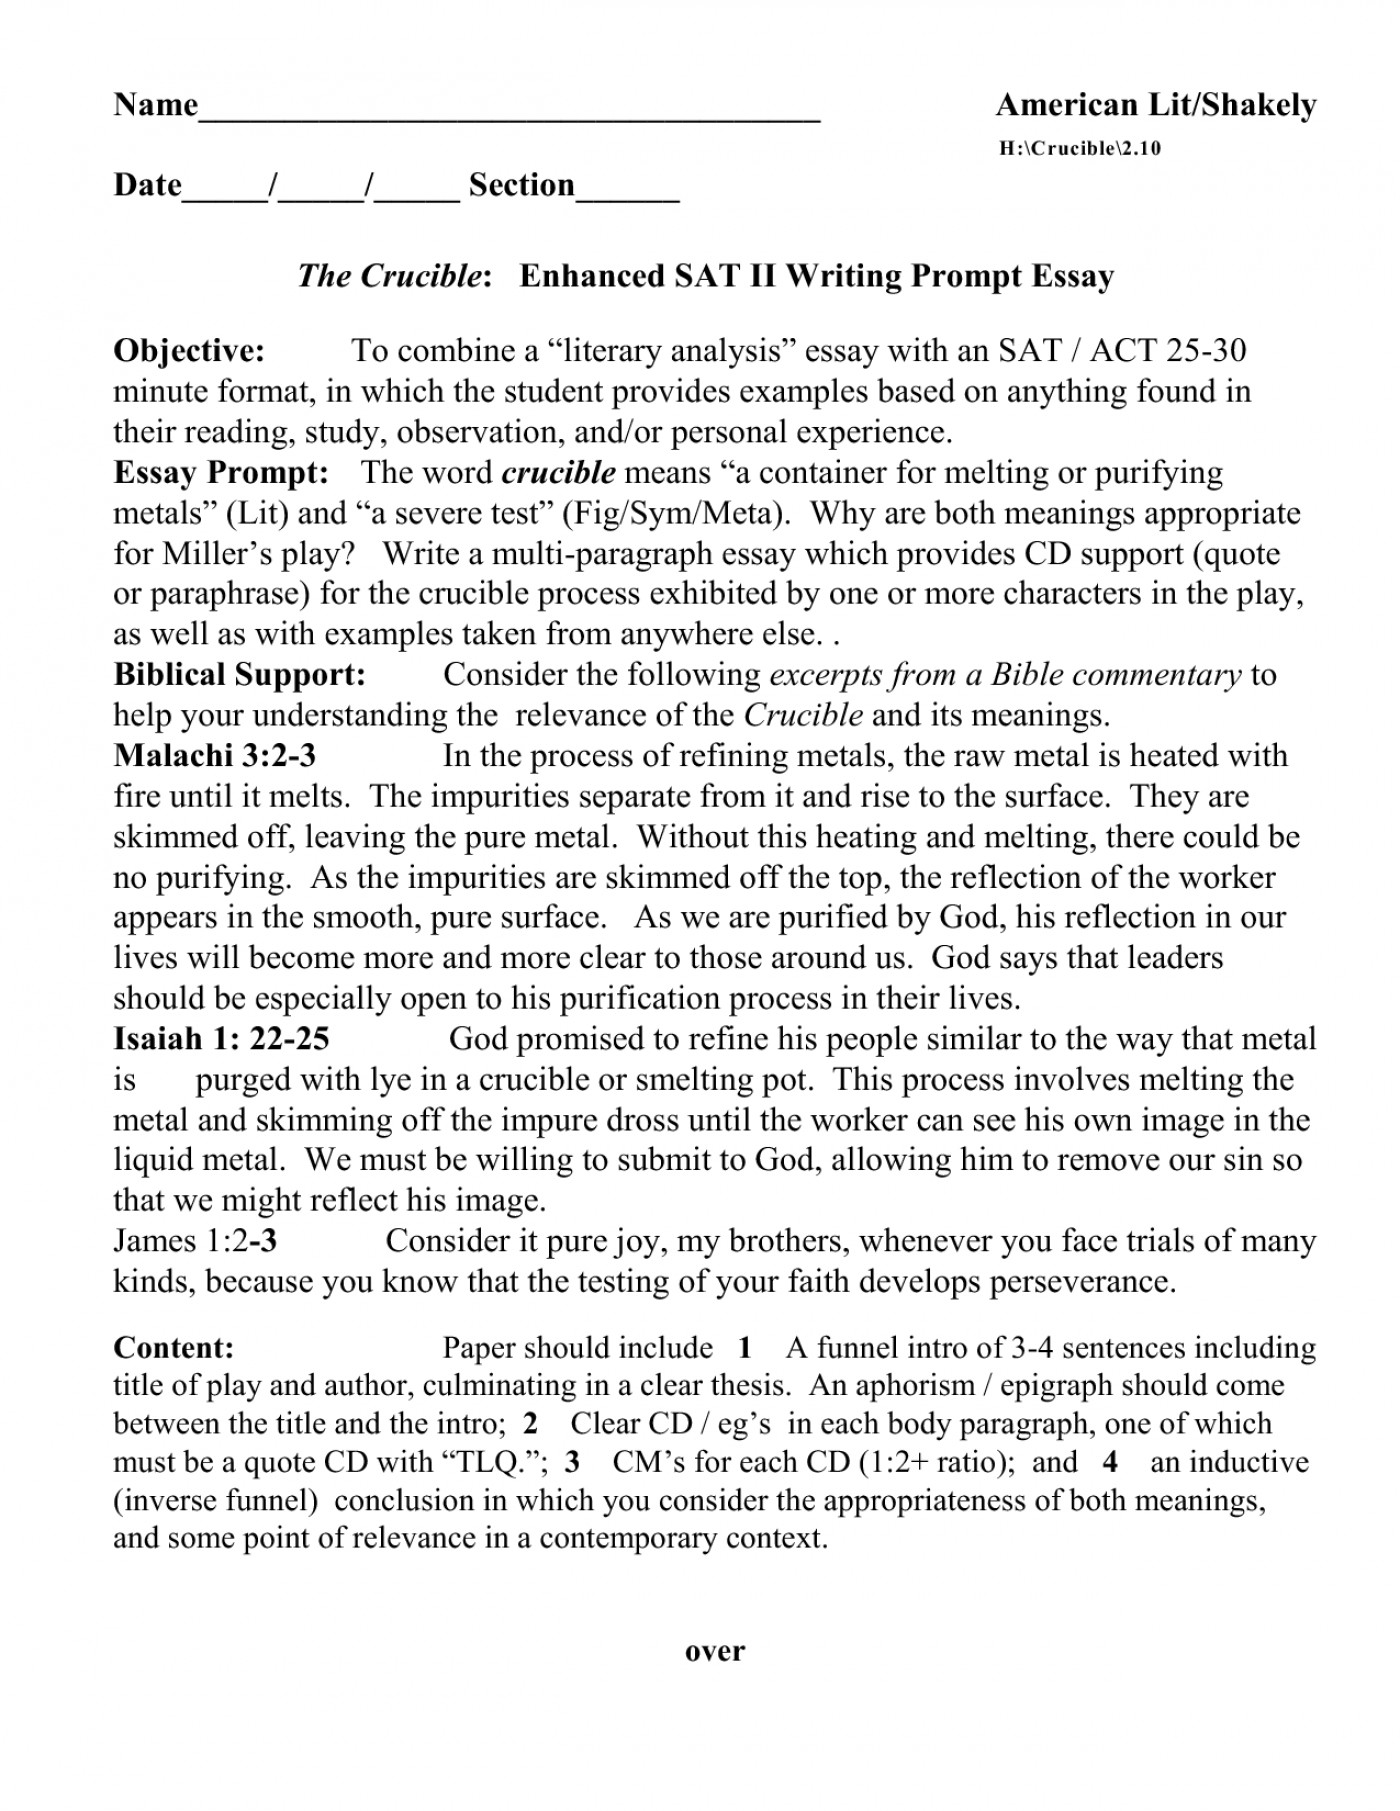 006 Sat Essays Quotes Quotesgram Is There An On The L Singular Essay Examples Reddit 2018 Writing Strategies Pdf 1400